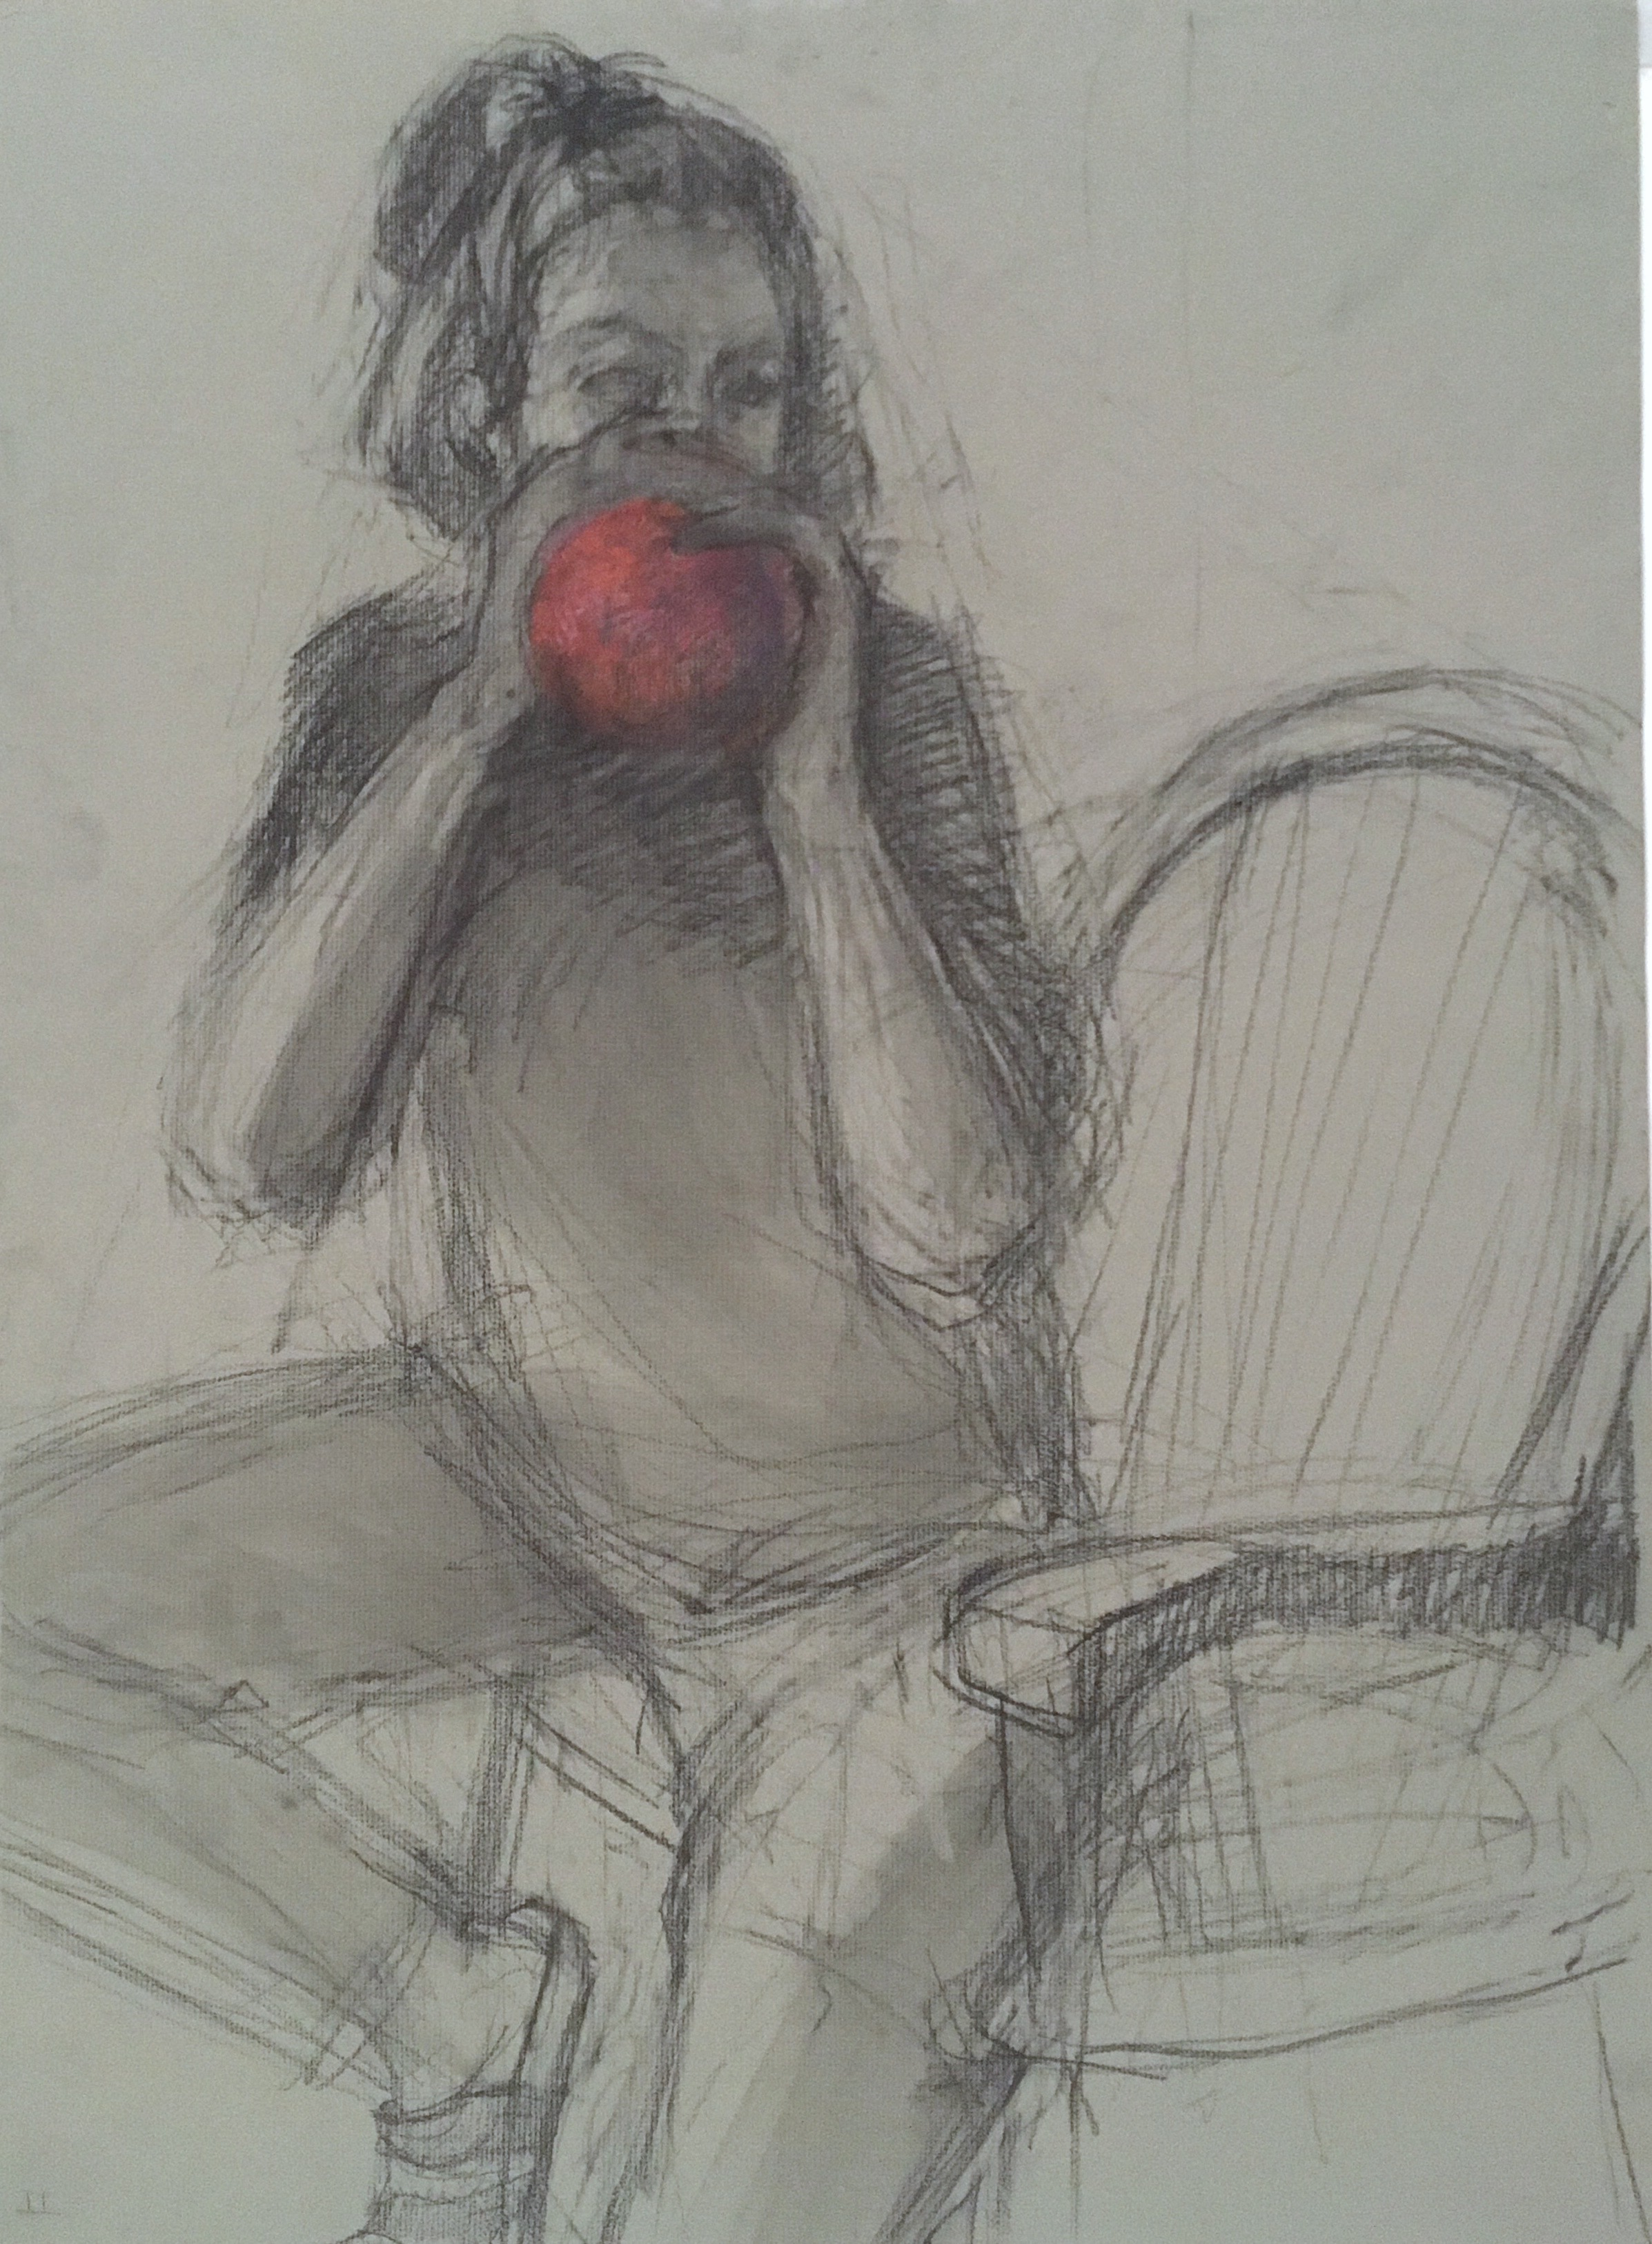 charcoal drawing of woman in chair blowing up a balloon